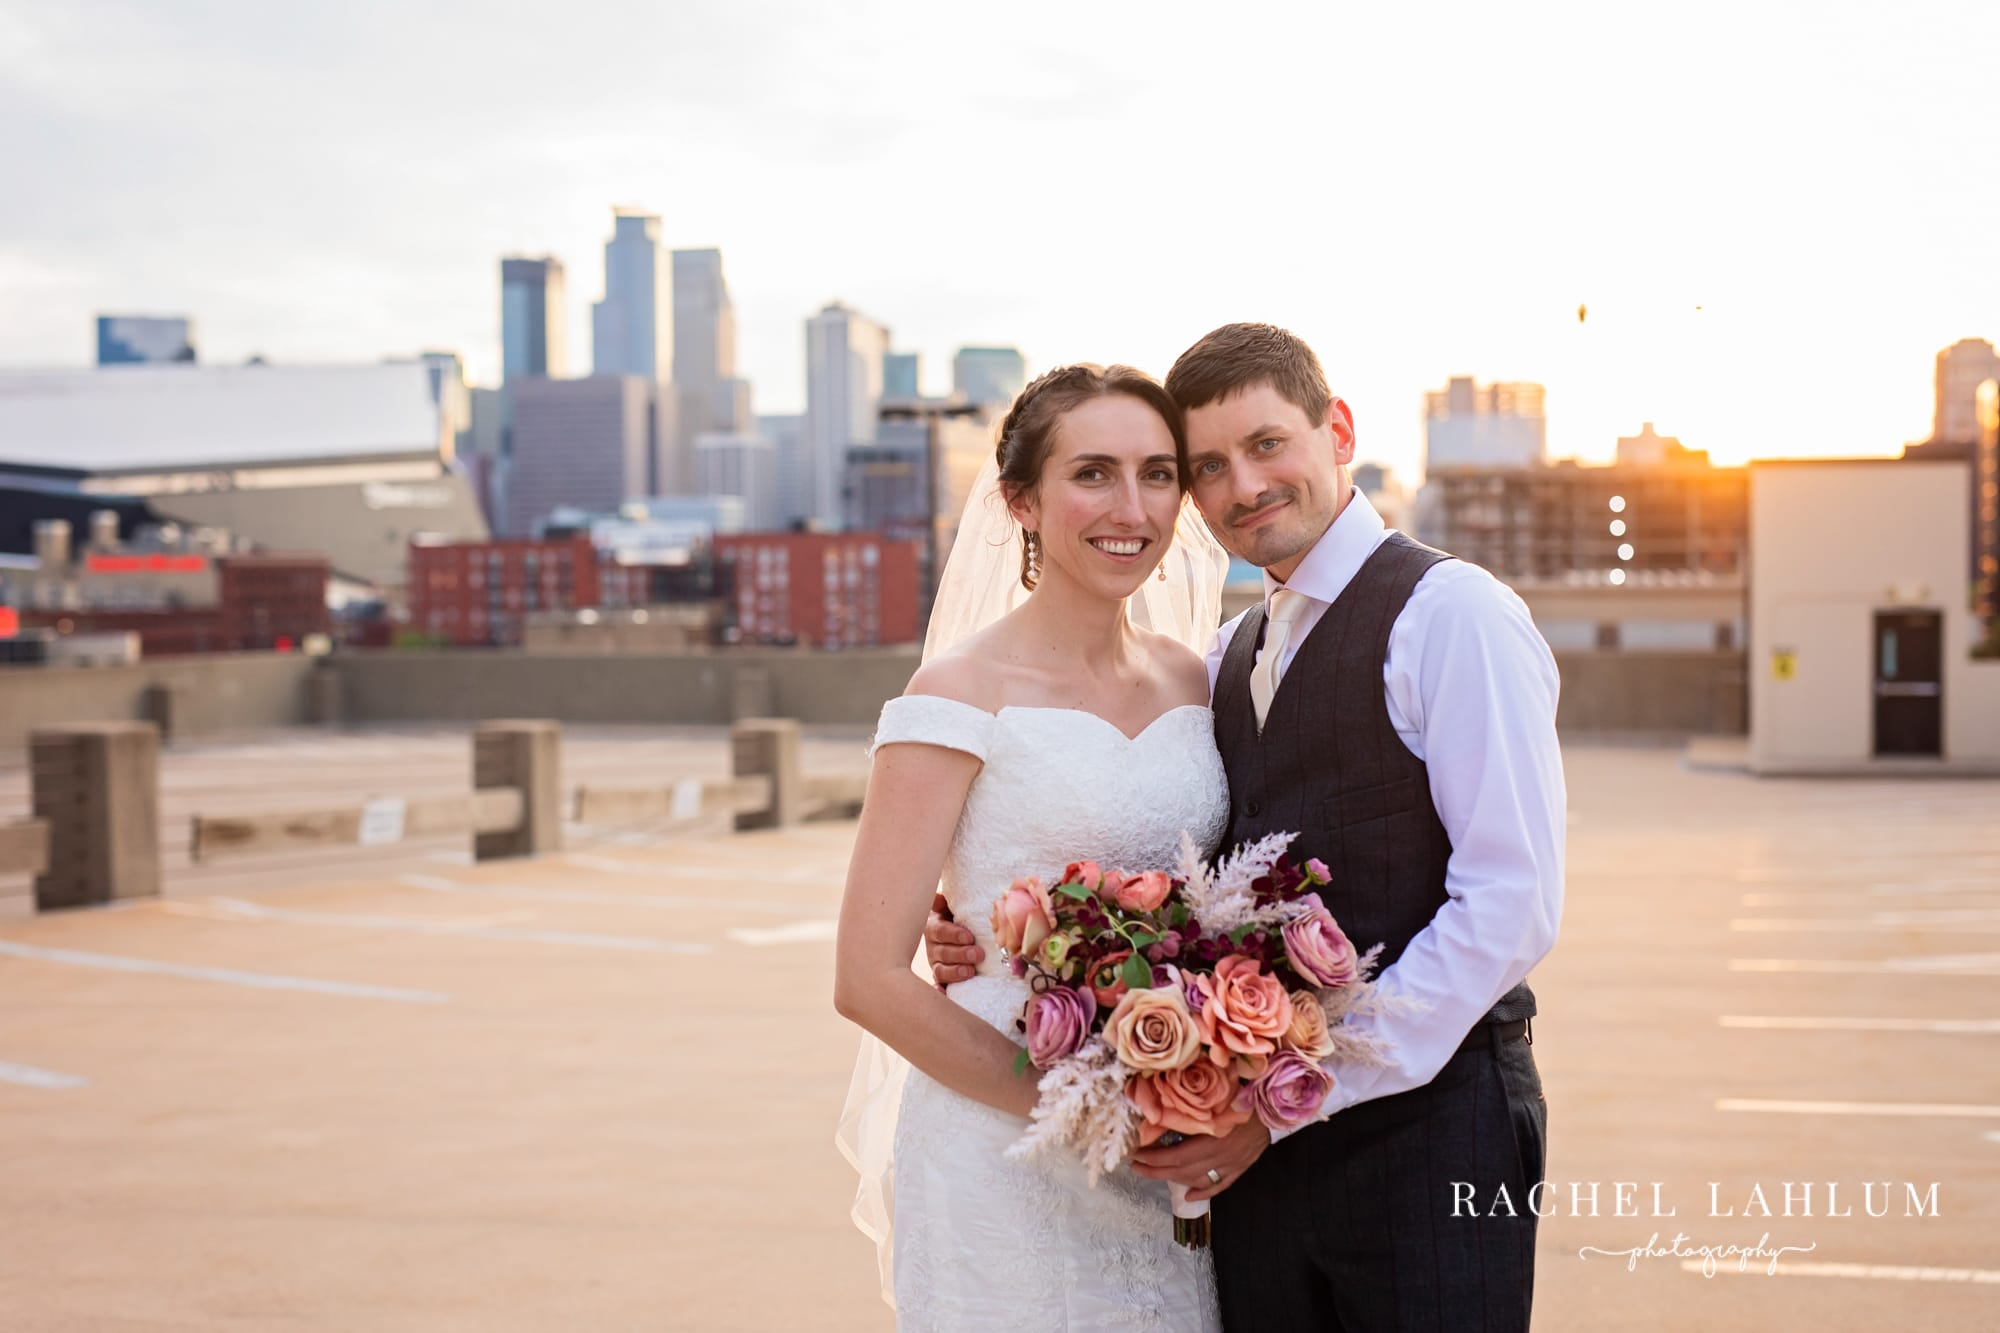 Newly weds pose for a portrait on a Minneapolis Rooftop.